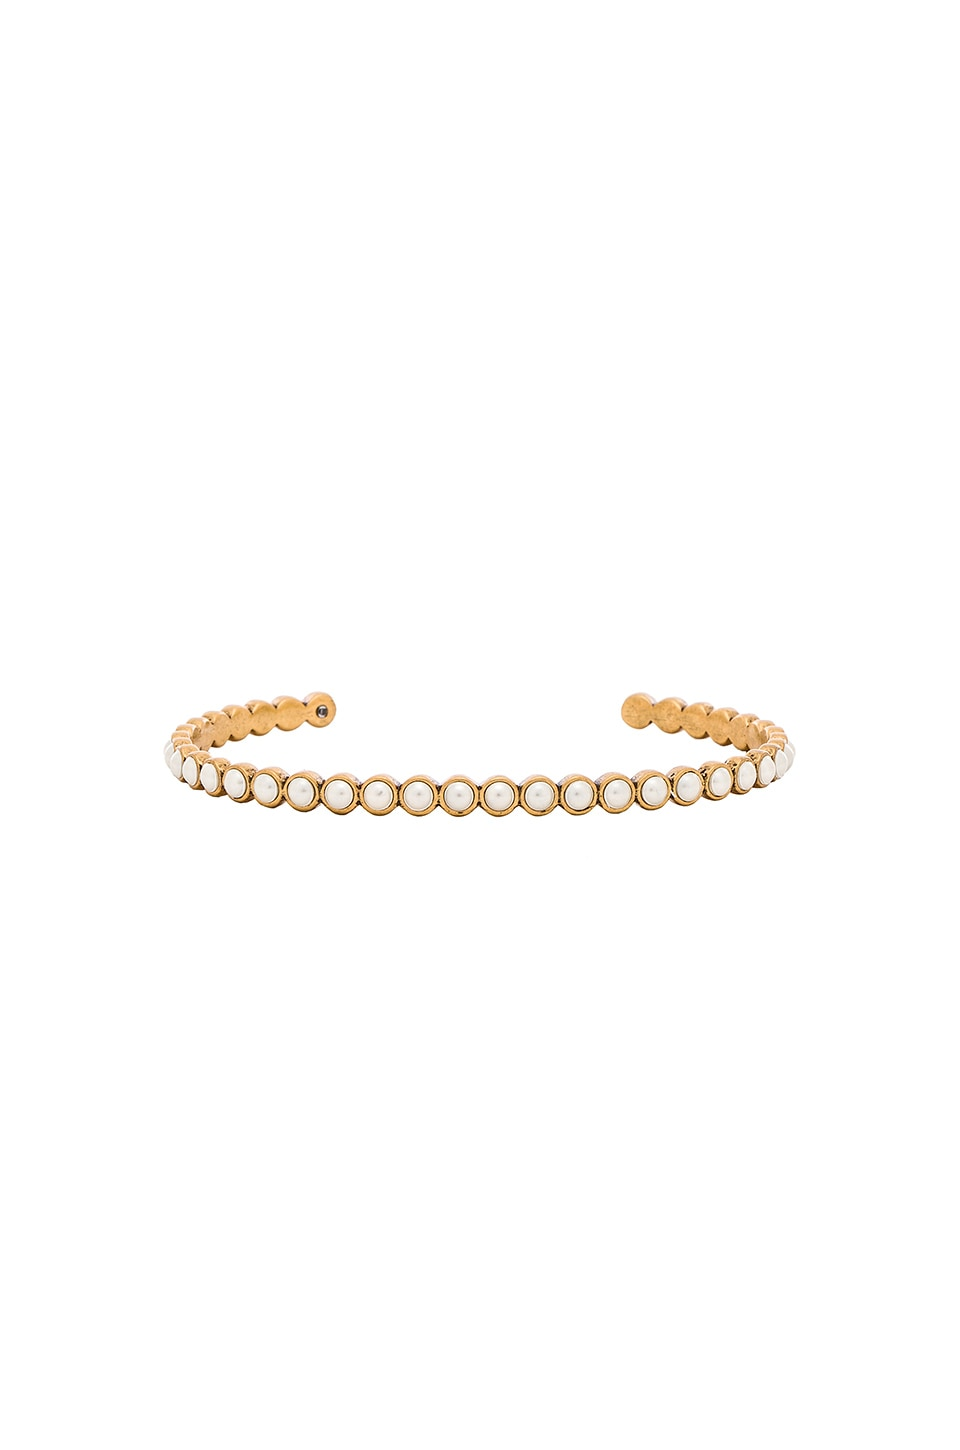 Marc Jacobs Pearl Delicate Dot Bracelet in Cream & Antique Gold